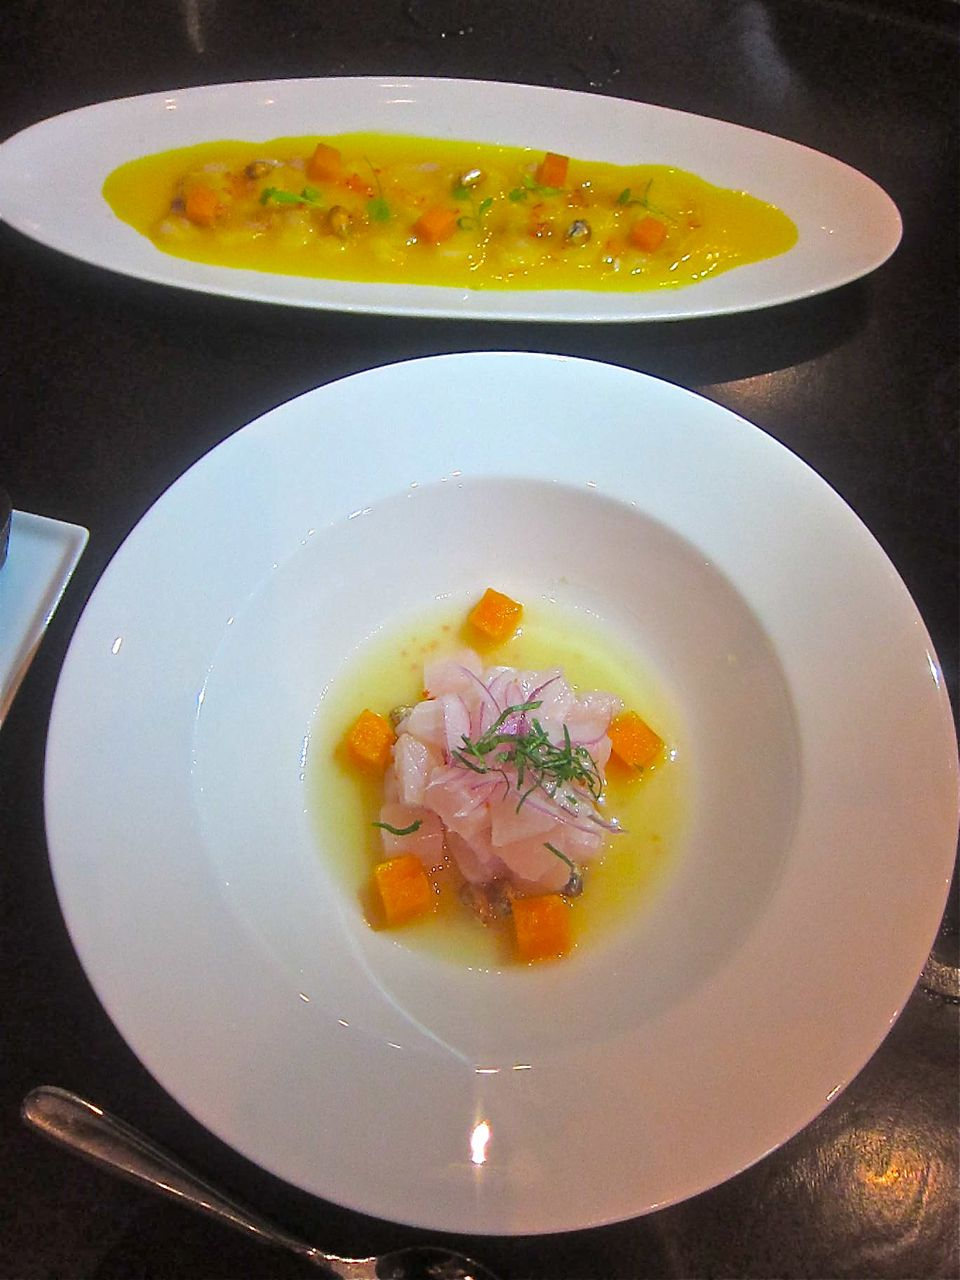 Corvina ceviche with sweet potato, top: wild bass tiradito in citrus tigre de leche